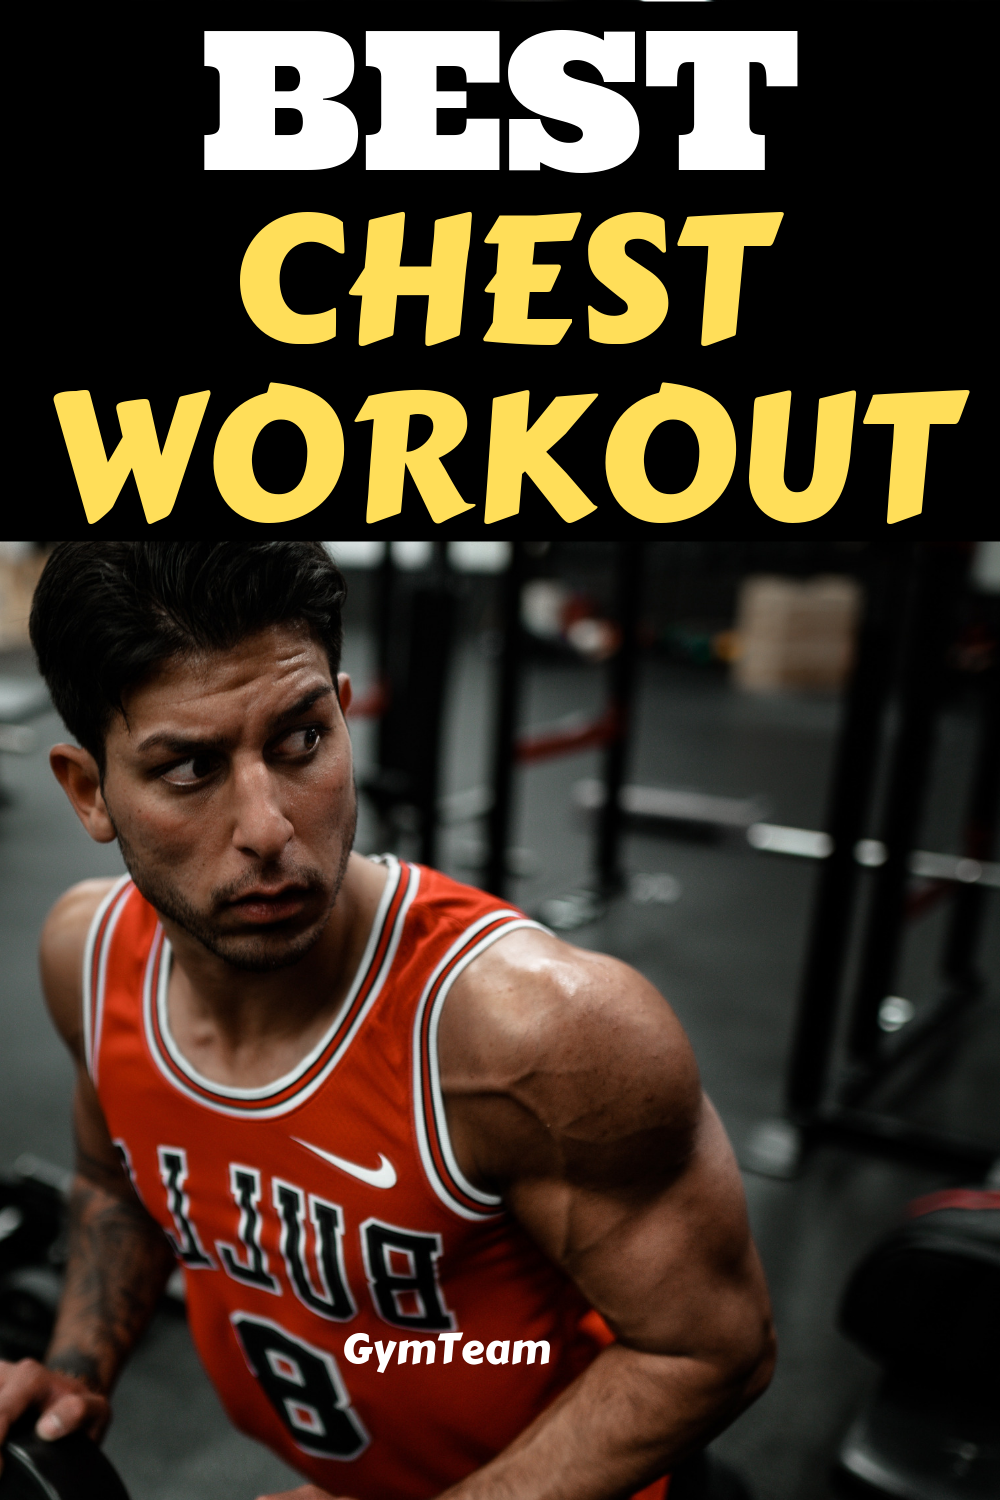 Best Chest Workout | Check our post to see one of the best chest workouts that will help you build m...